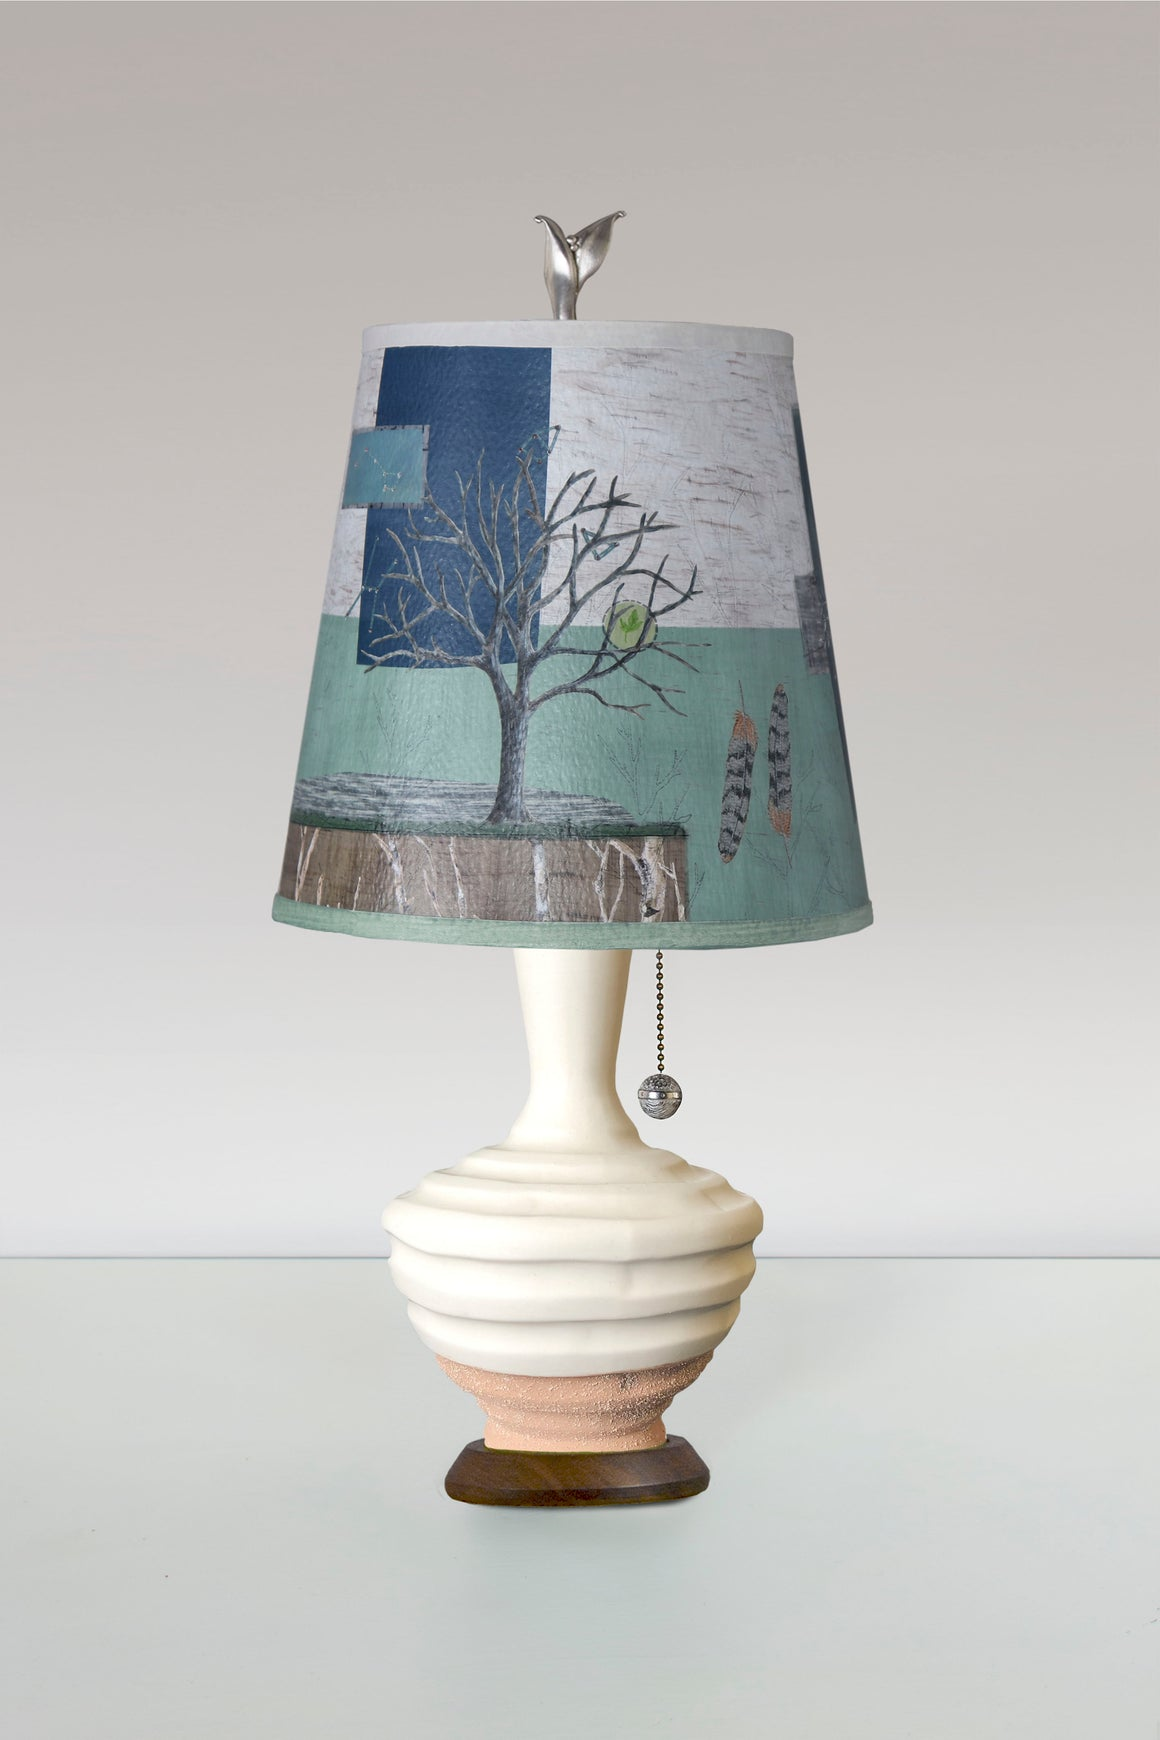 Terracotta and White Ceramic Table Lamp with Small Drum Shade in Wander in Field